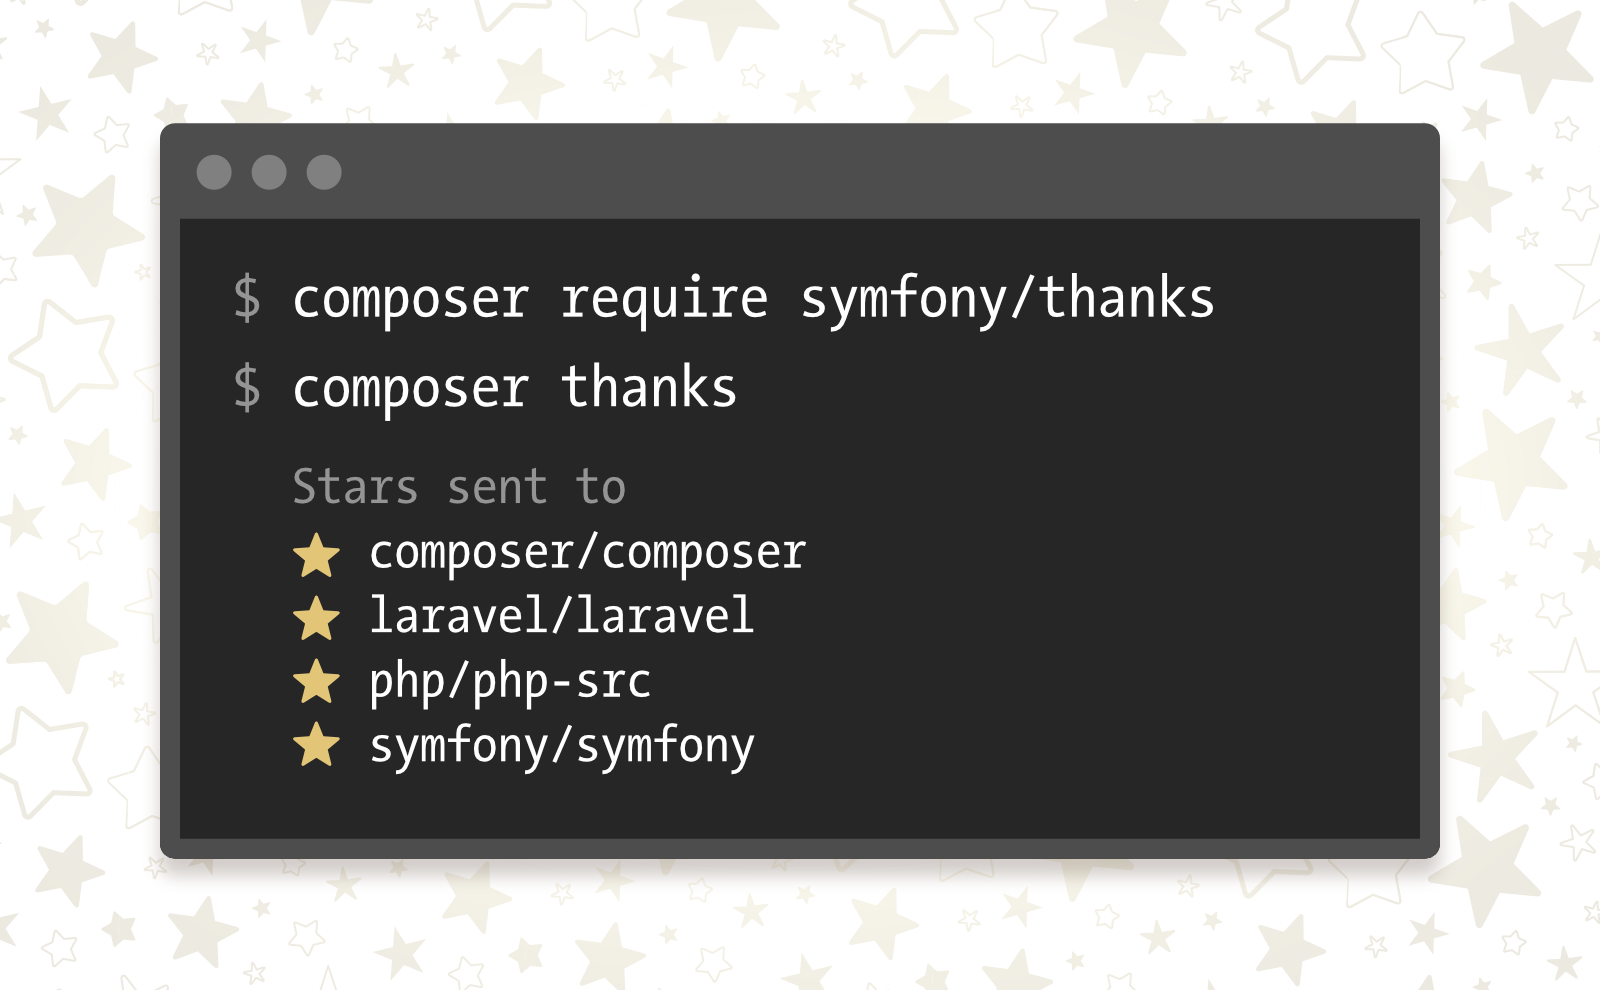 Composer thanks